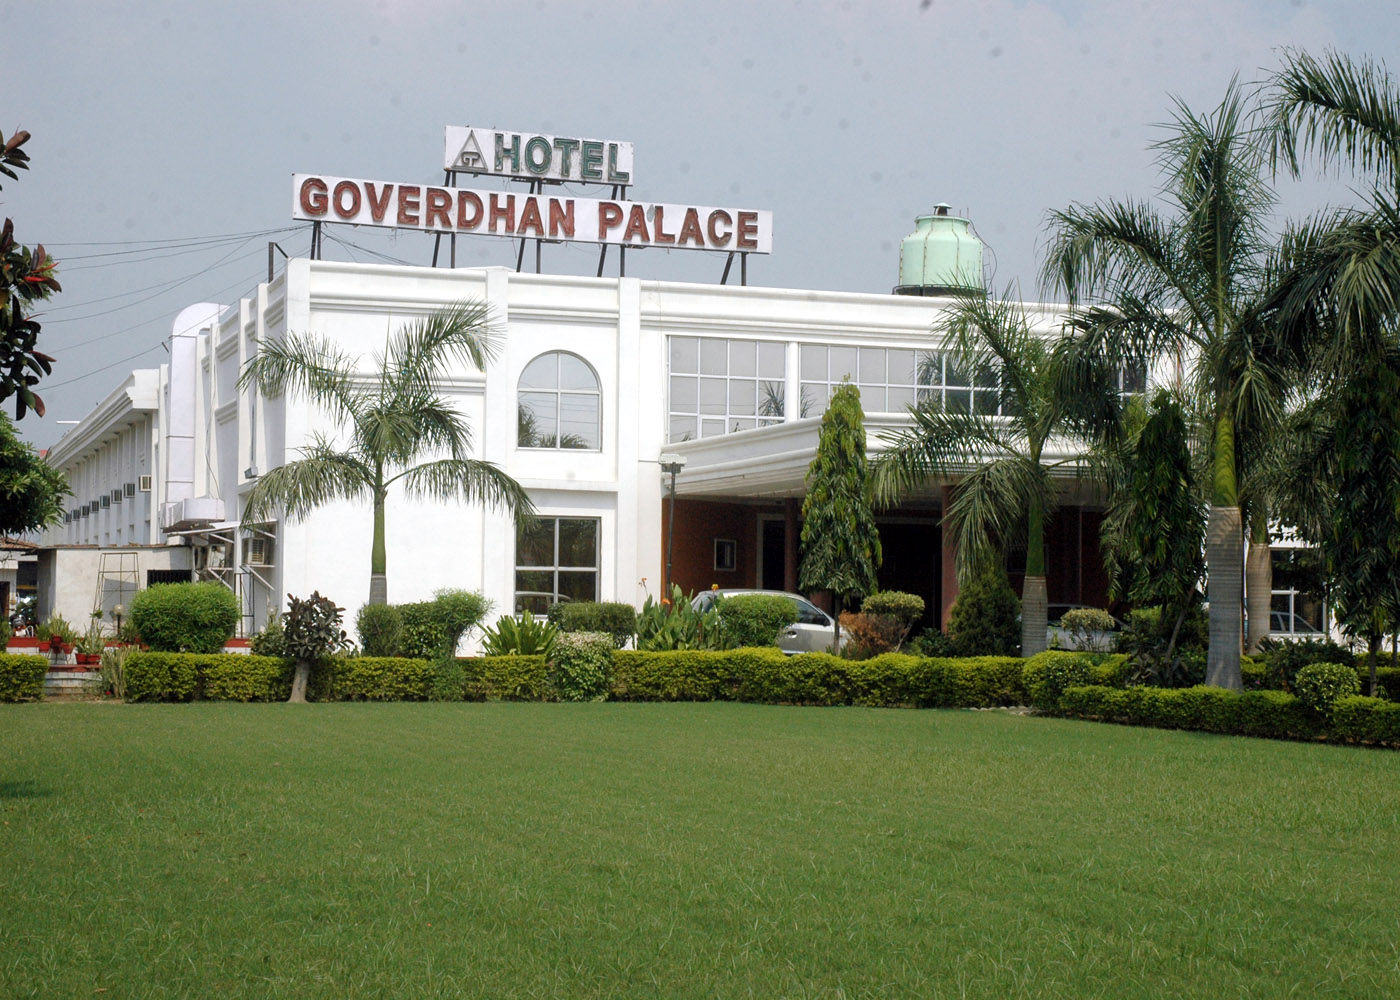 GOVERDHAN PALACE